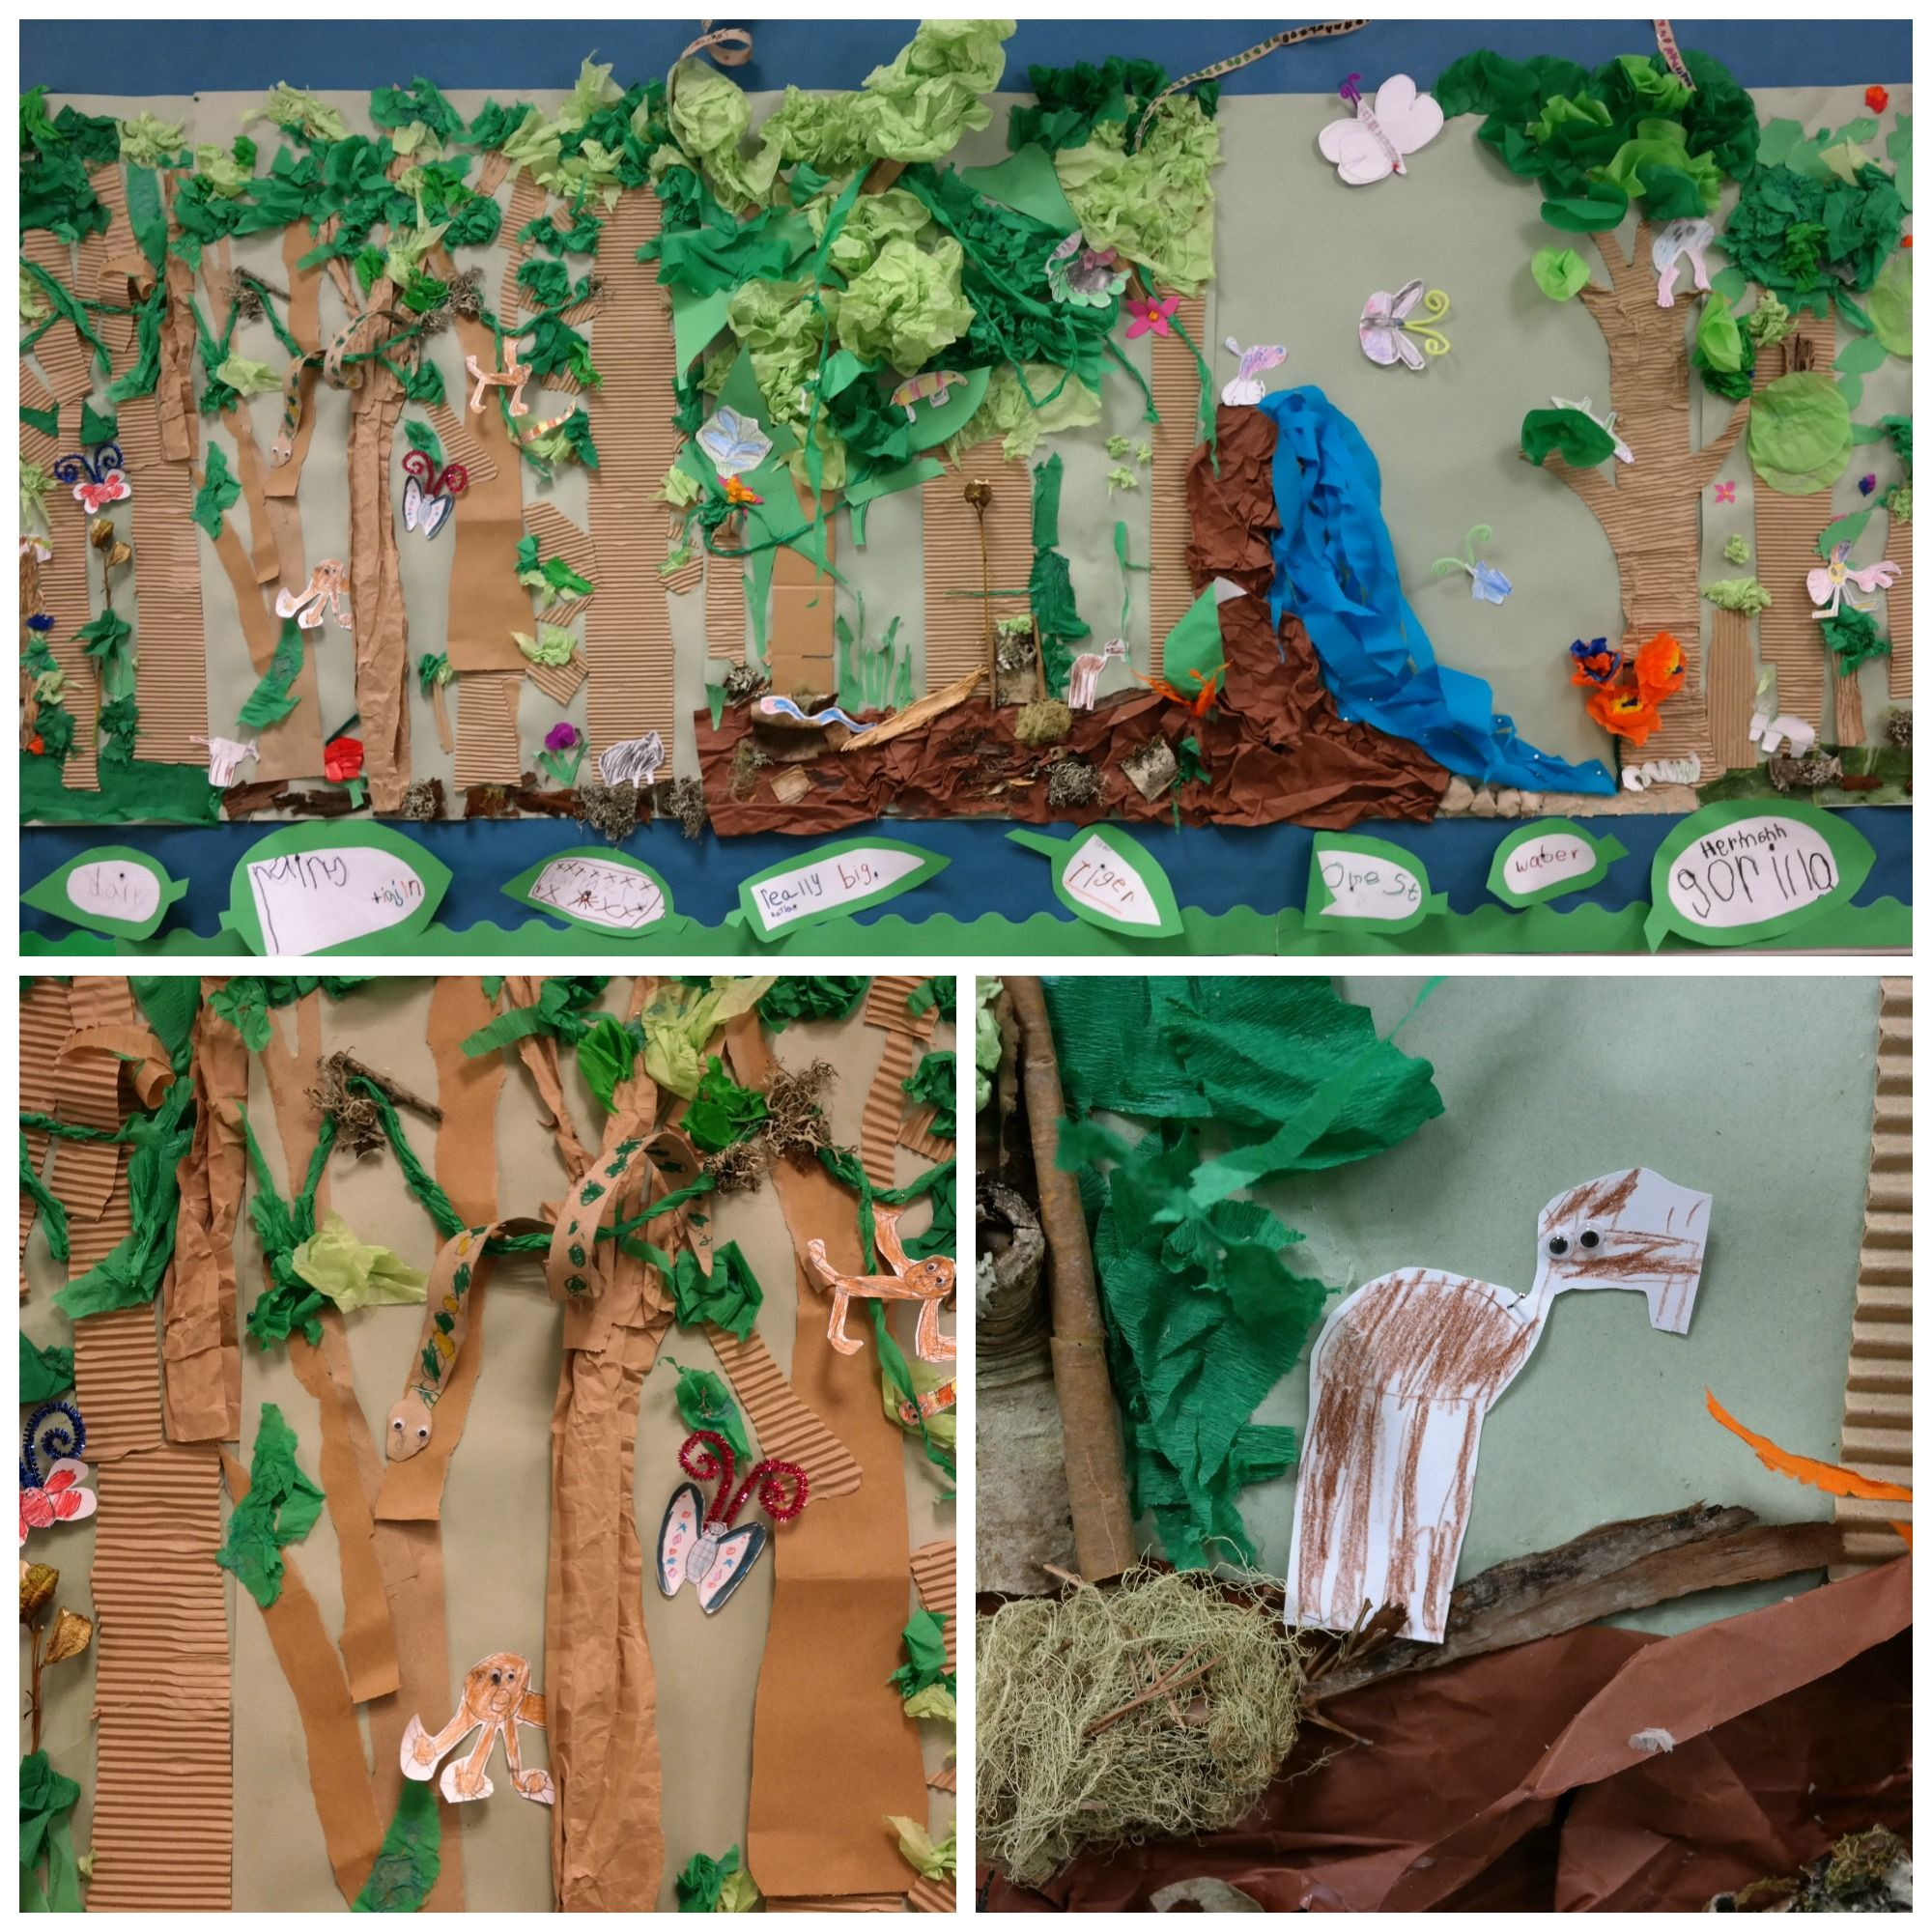 This Was Our Rainforest Collage That Our Class Made For